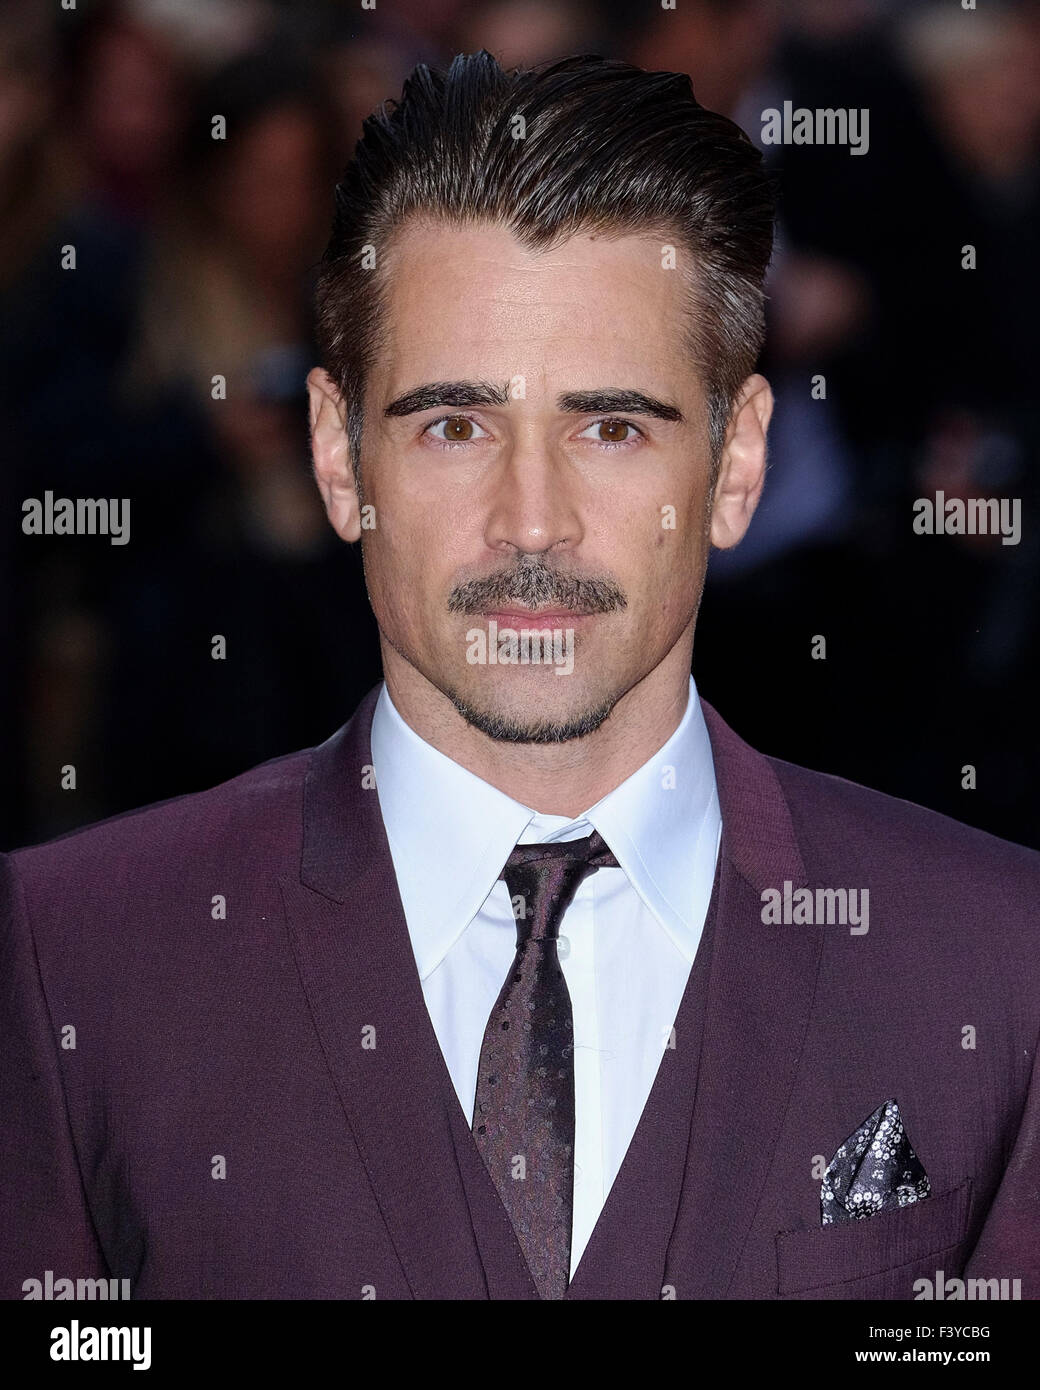 London, UK. 13th October, 2015. Colin Farrell arrives on the red carpet for the London Film Festival screening of - Stock Image